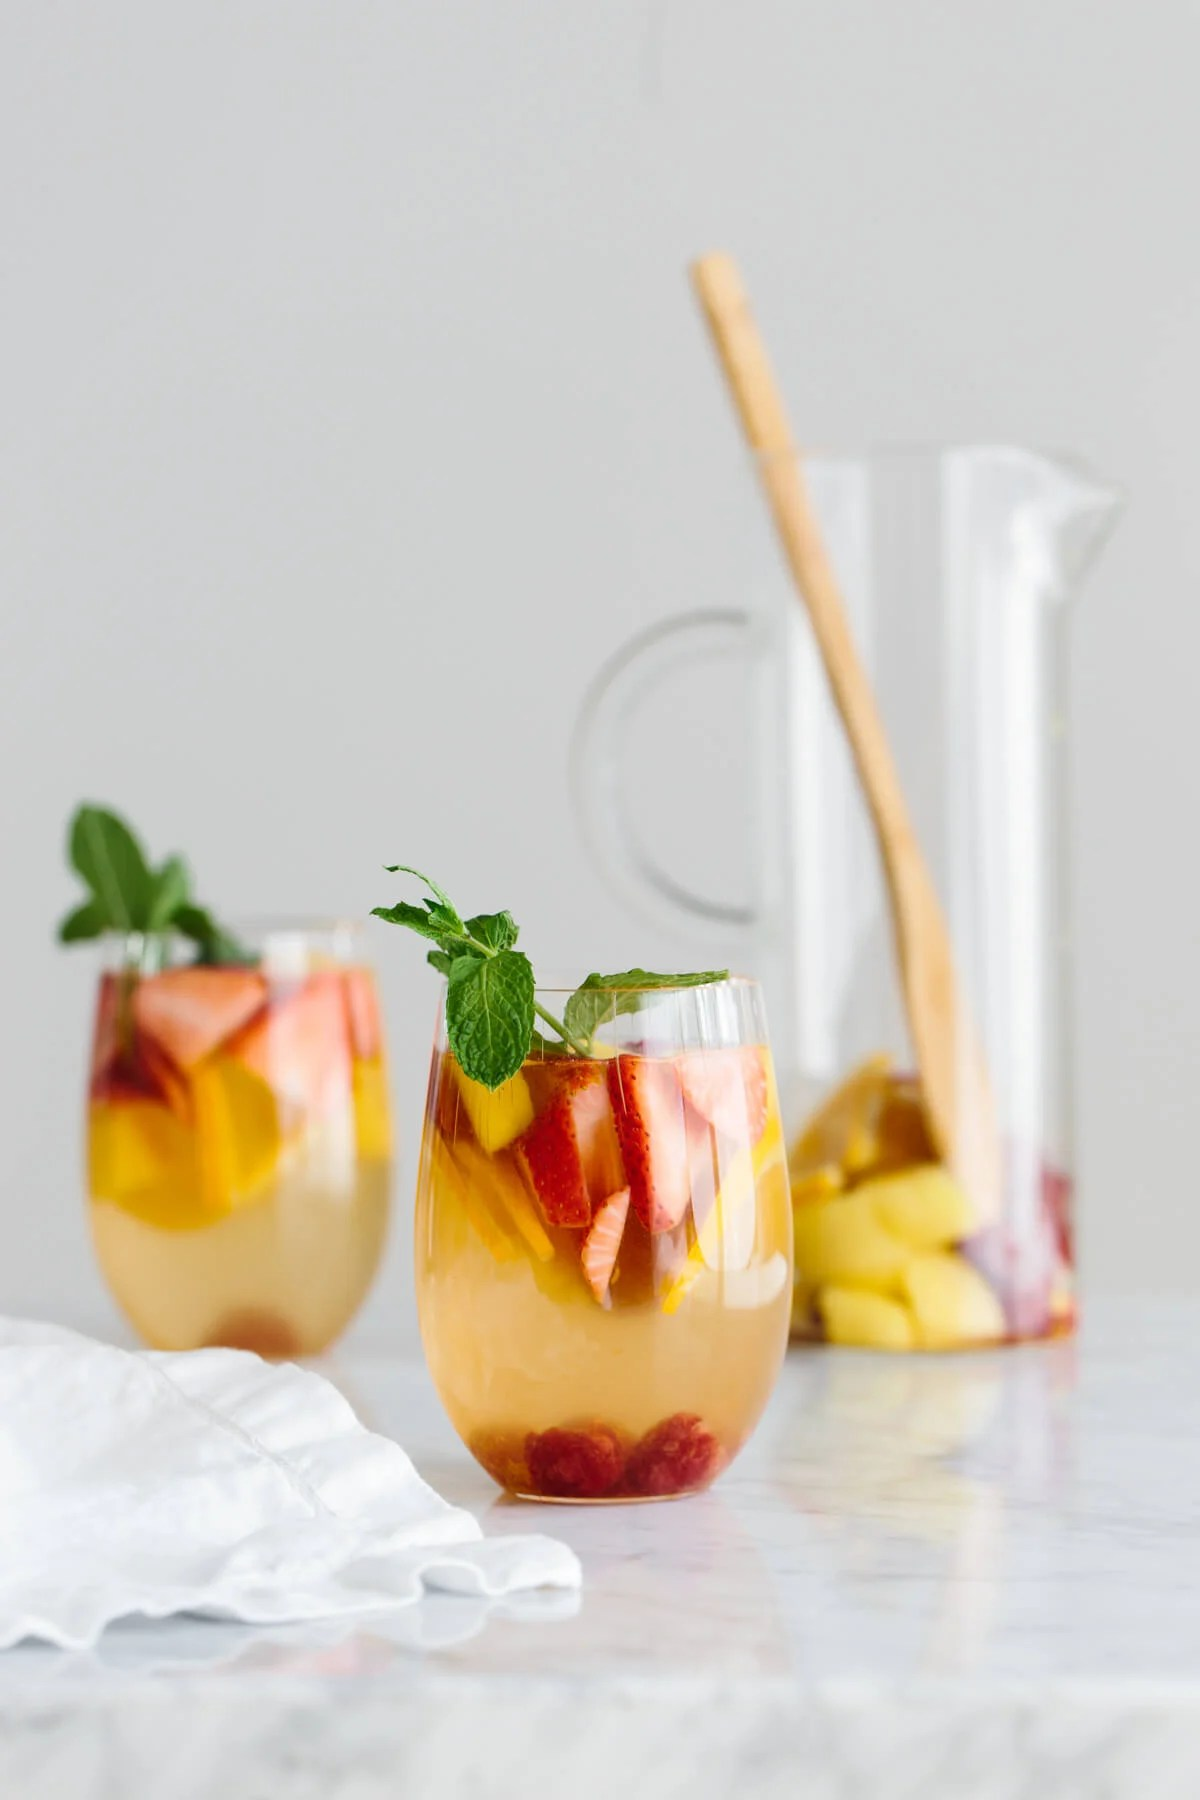 Two glasses of white sangria with an empty pitcher in the background.